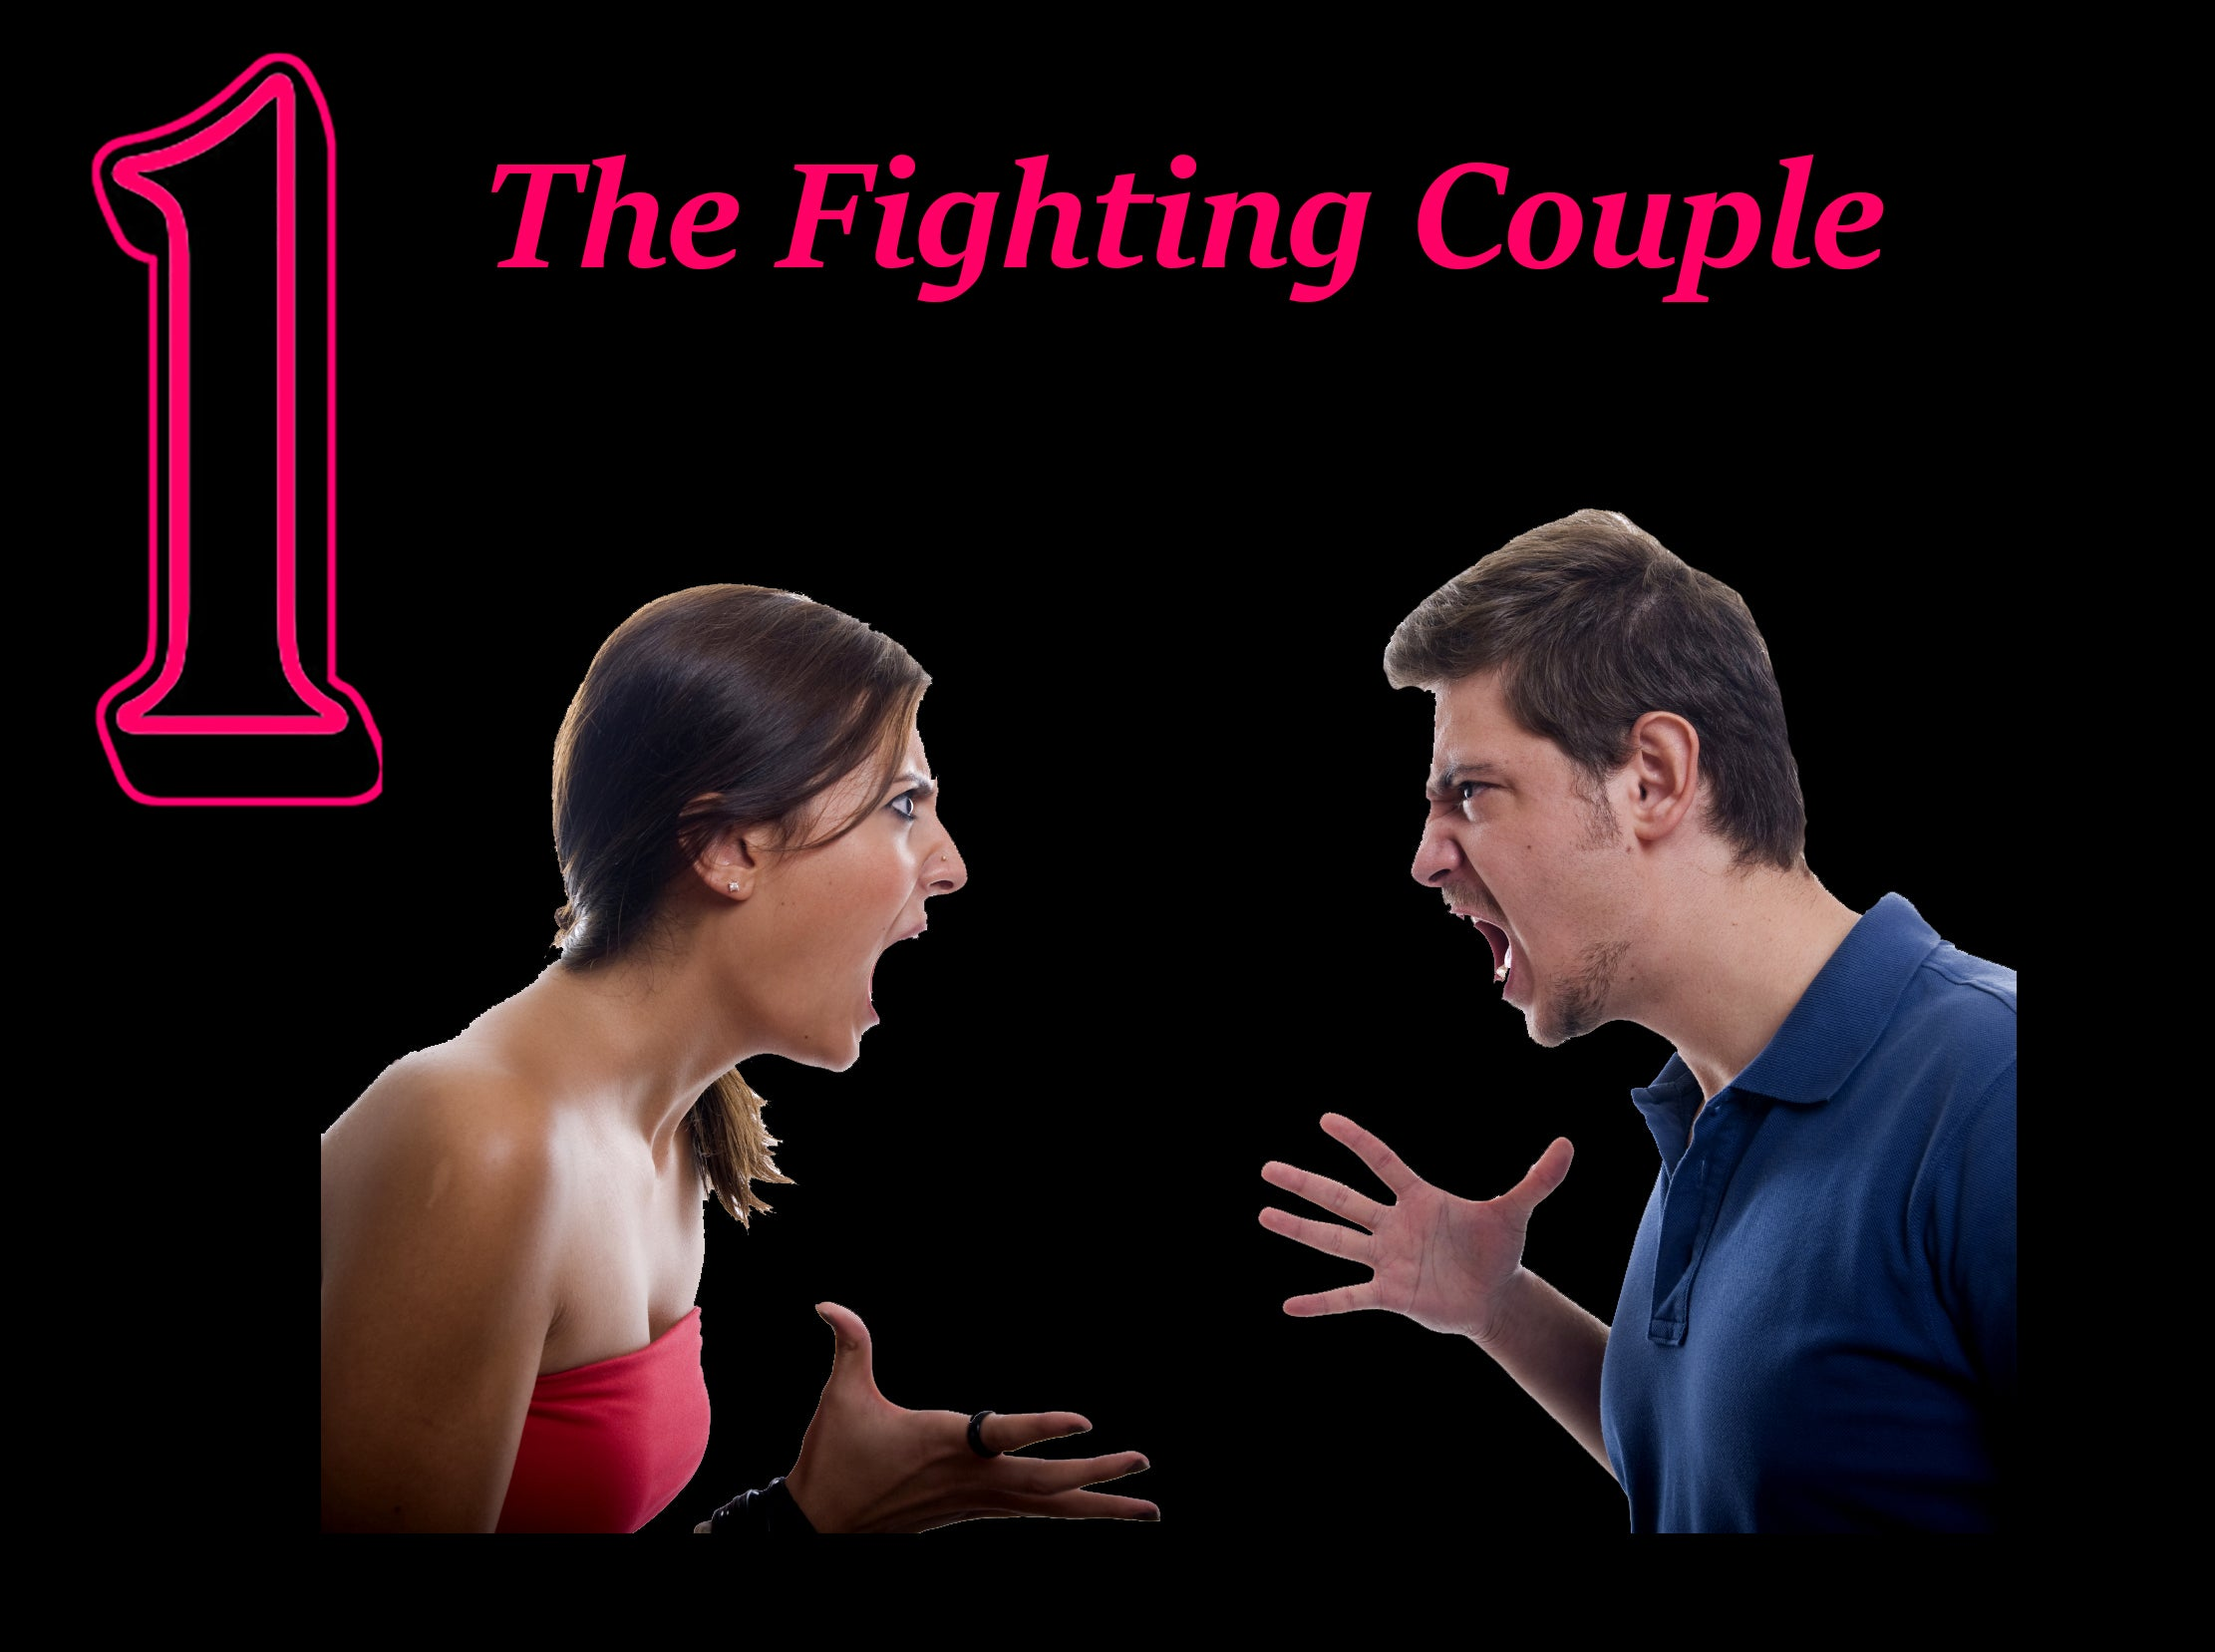 the fighting couple